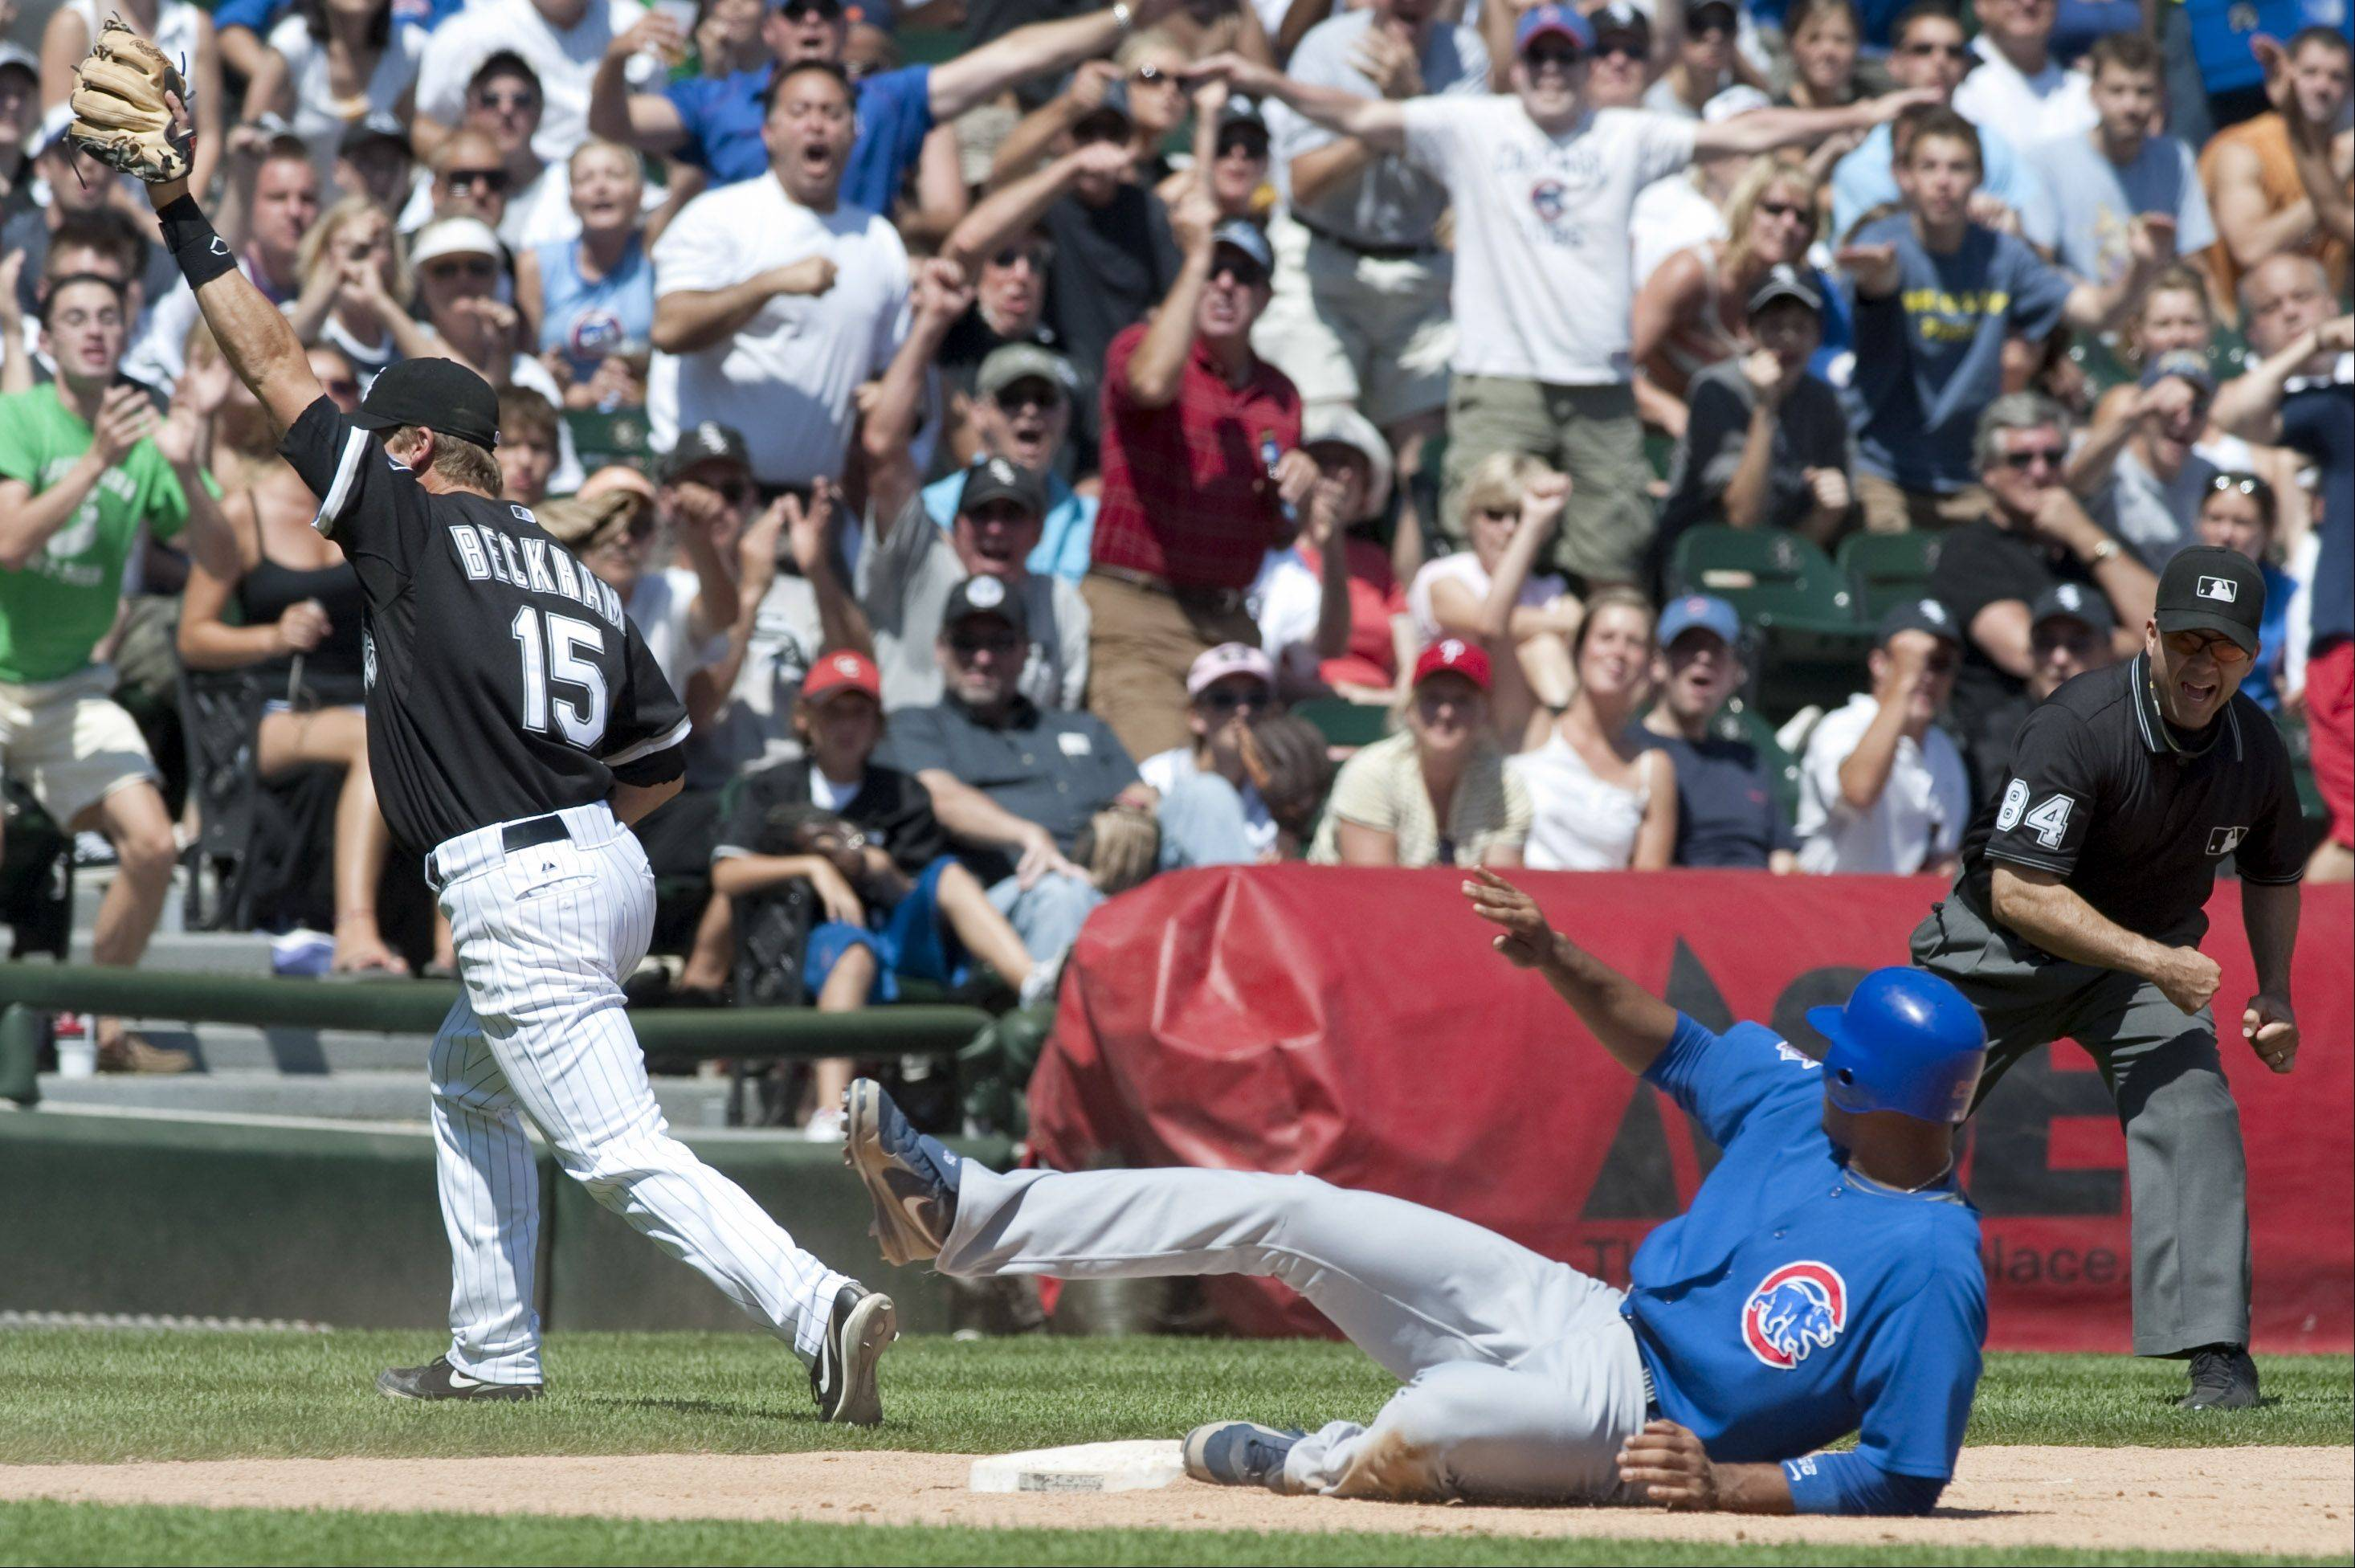 Sox third basemen Gordon Beckham cheers as he forces out Cubs first basemen Derrek Lee at third base during the sixth inning at U.S. Cellular Field on Sunday in Chicago.